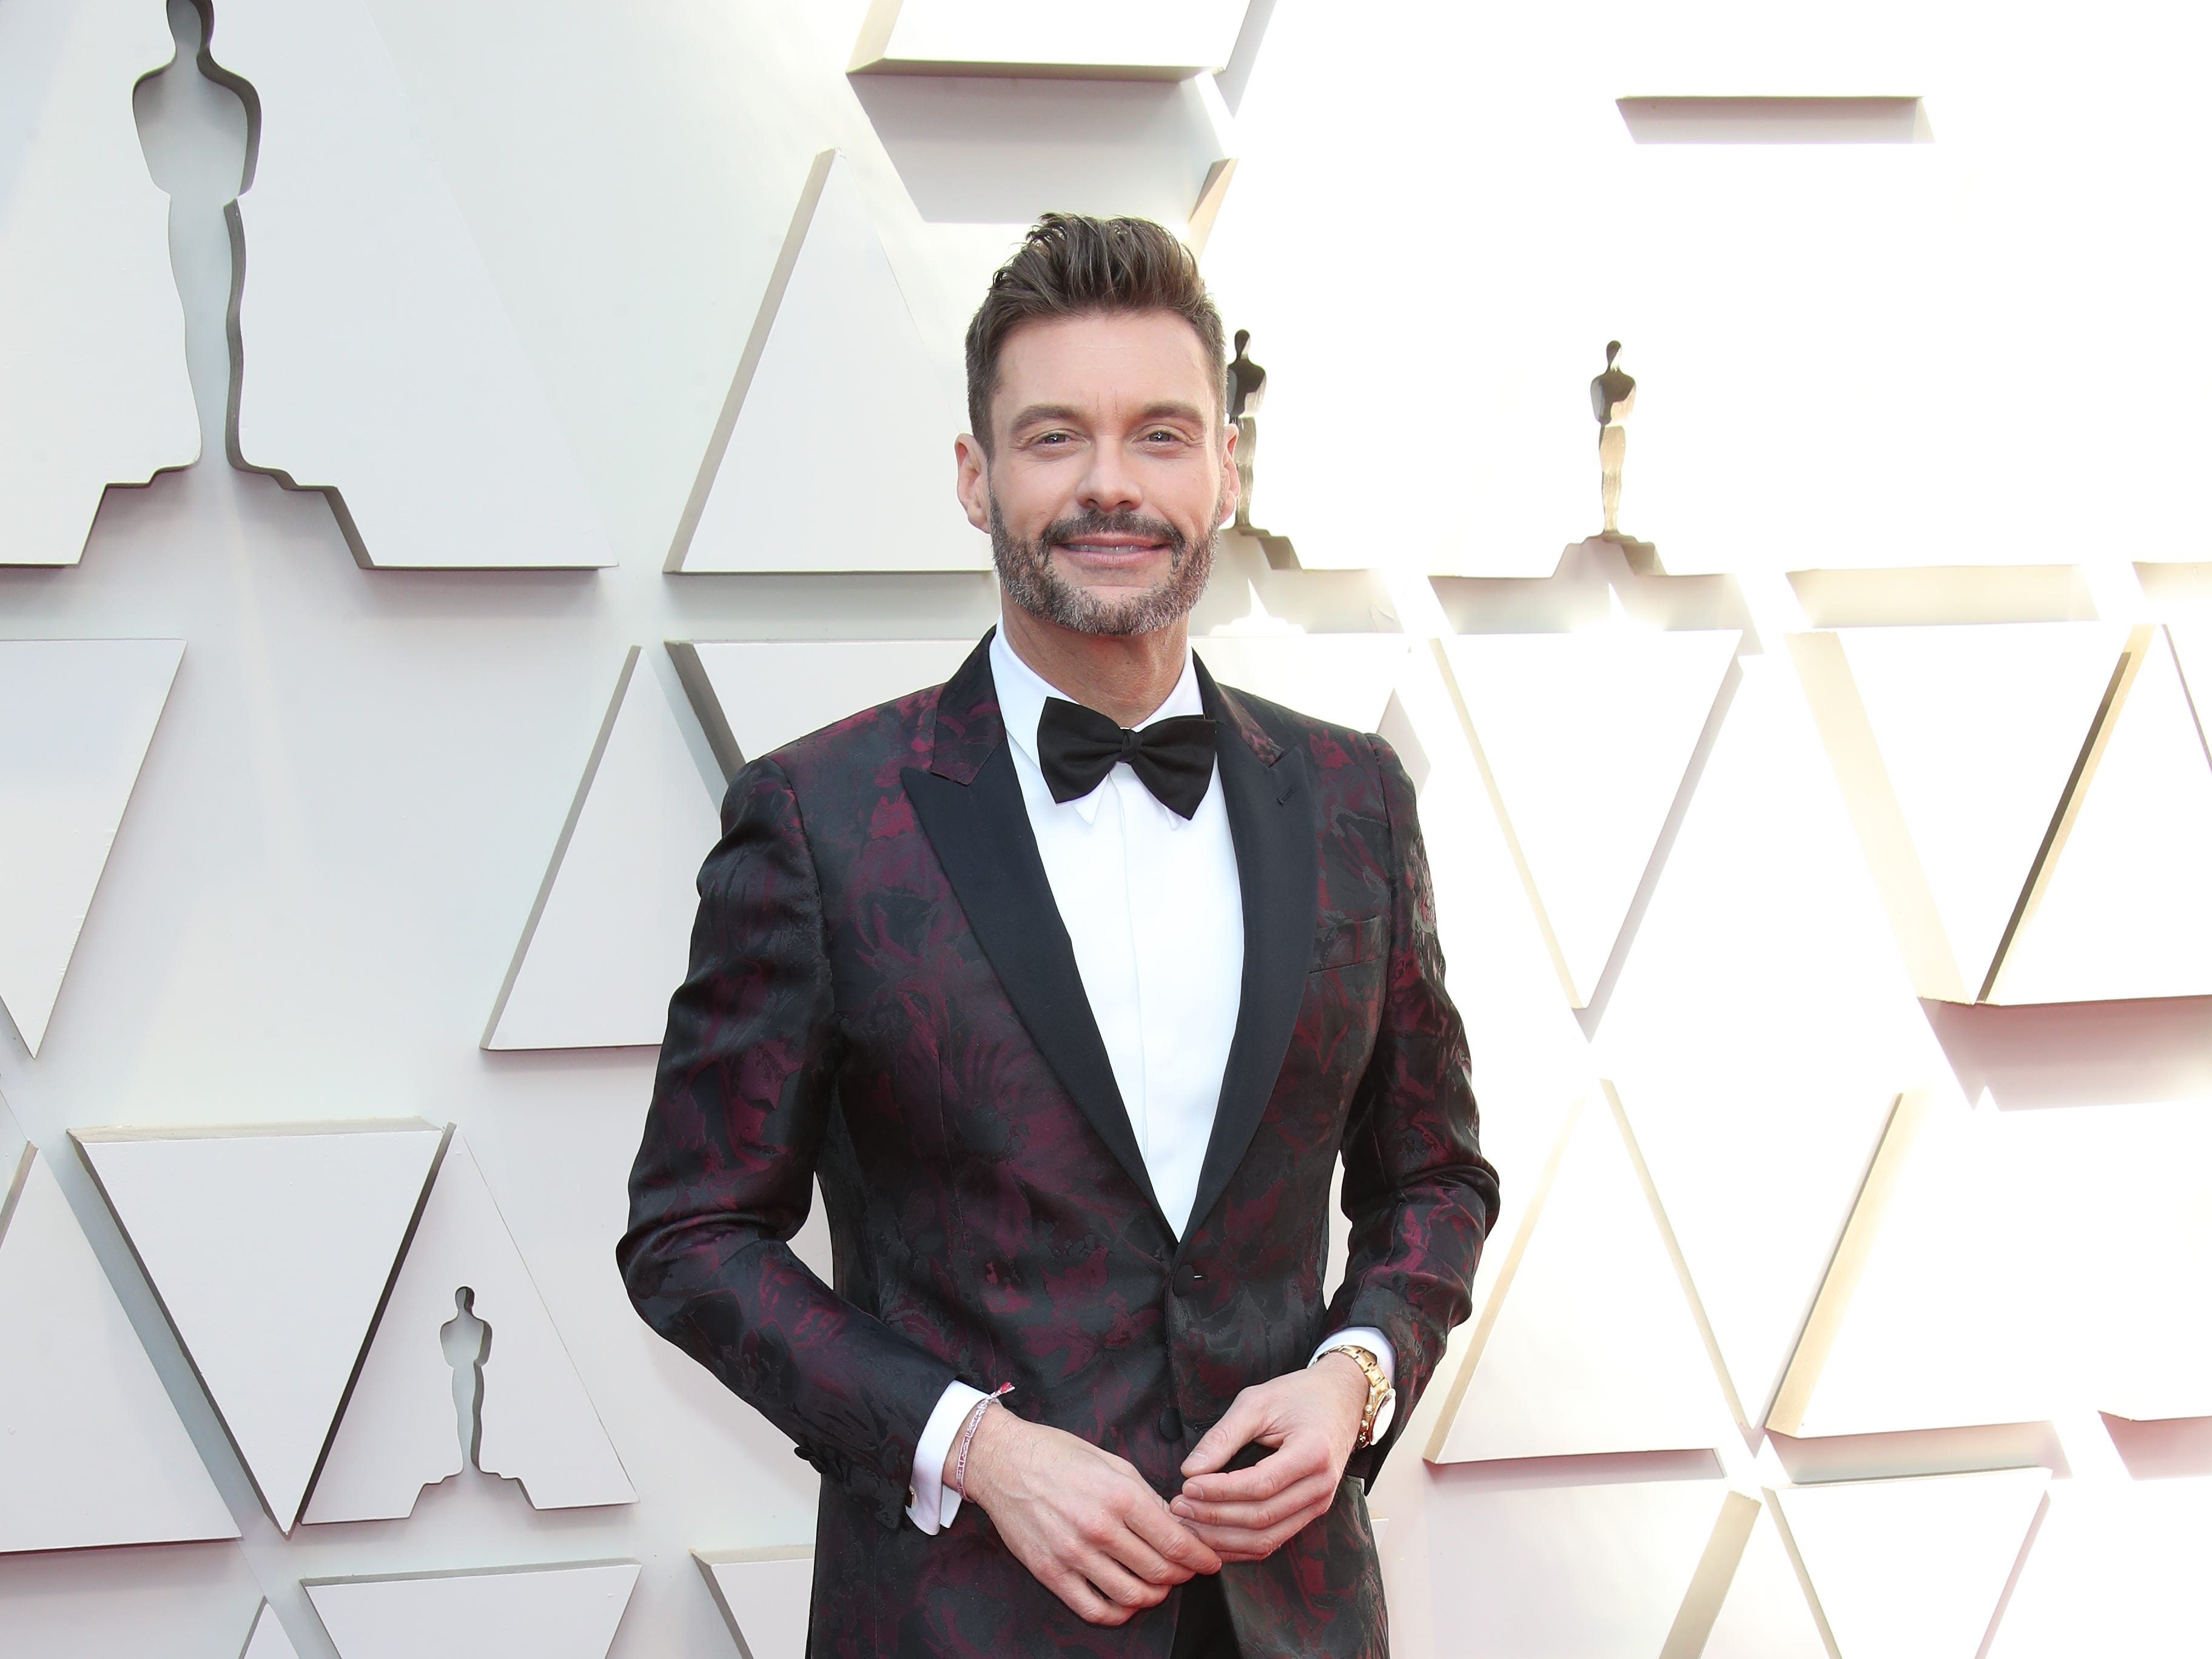 February 24, 2019; Los Angeles, CA, USA; Ryan Seacrest arrives at the 91st Academy Awards at the Dolby Theatre. Mandatory Credit: Dan MacMedan-USA TODAY NETWORK (Via OlyDrop)